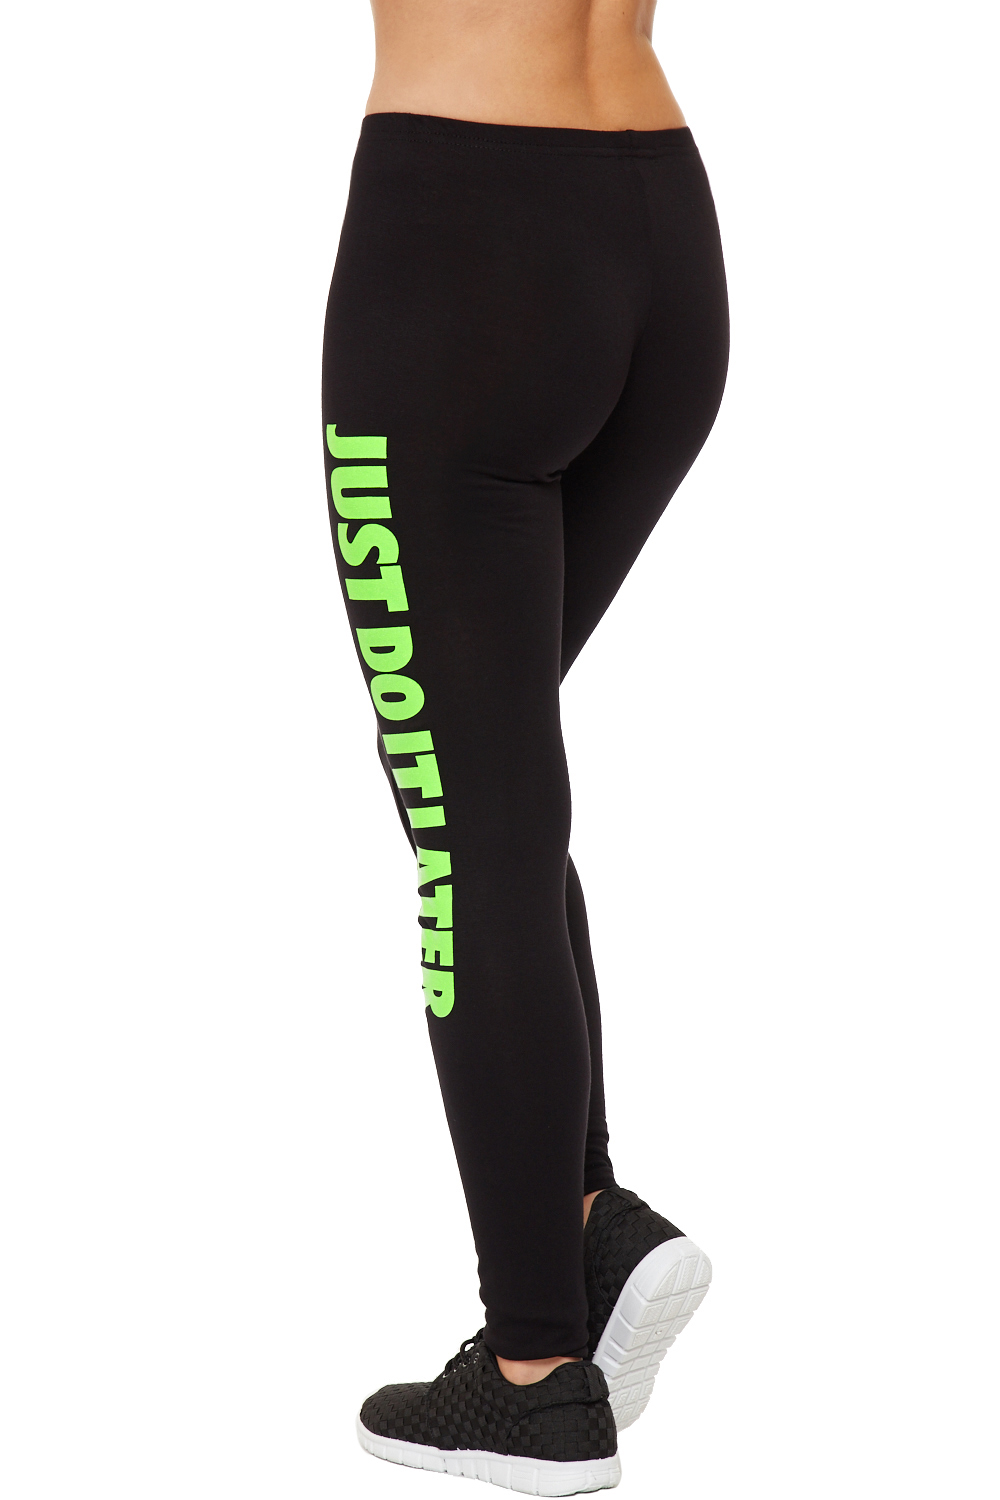 Womens Neon Print Leggings Just Do It Later Full Length Stretch ...